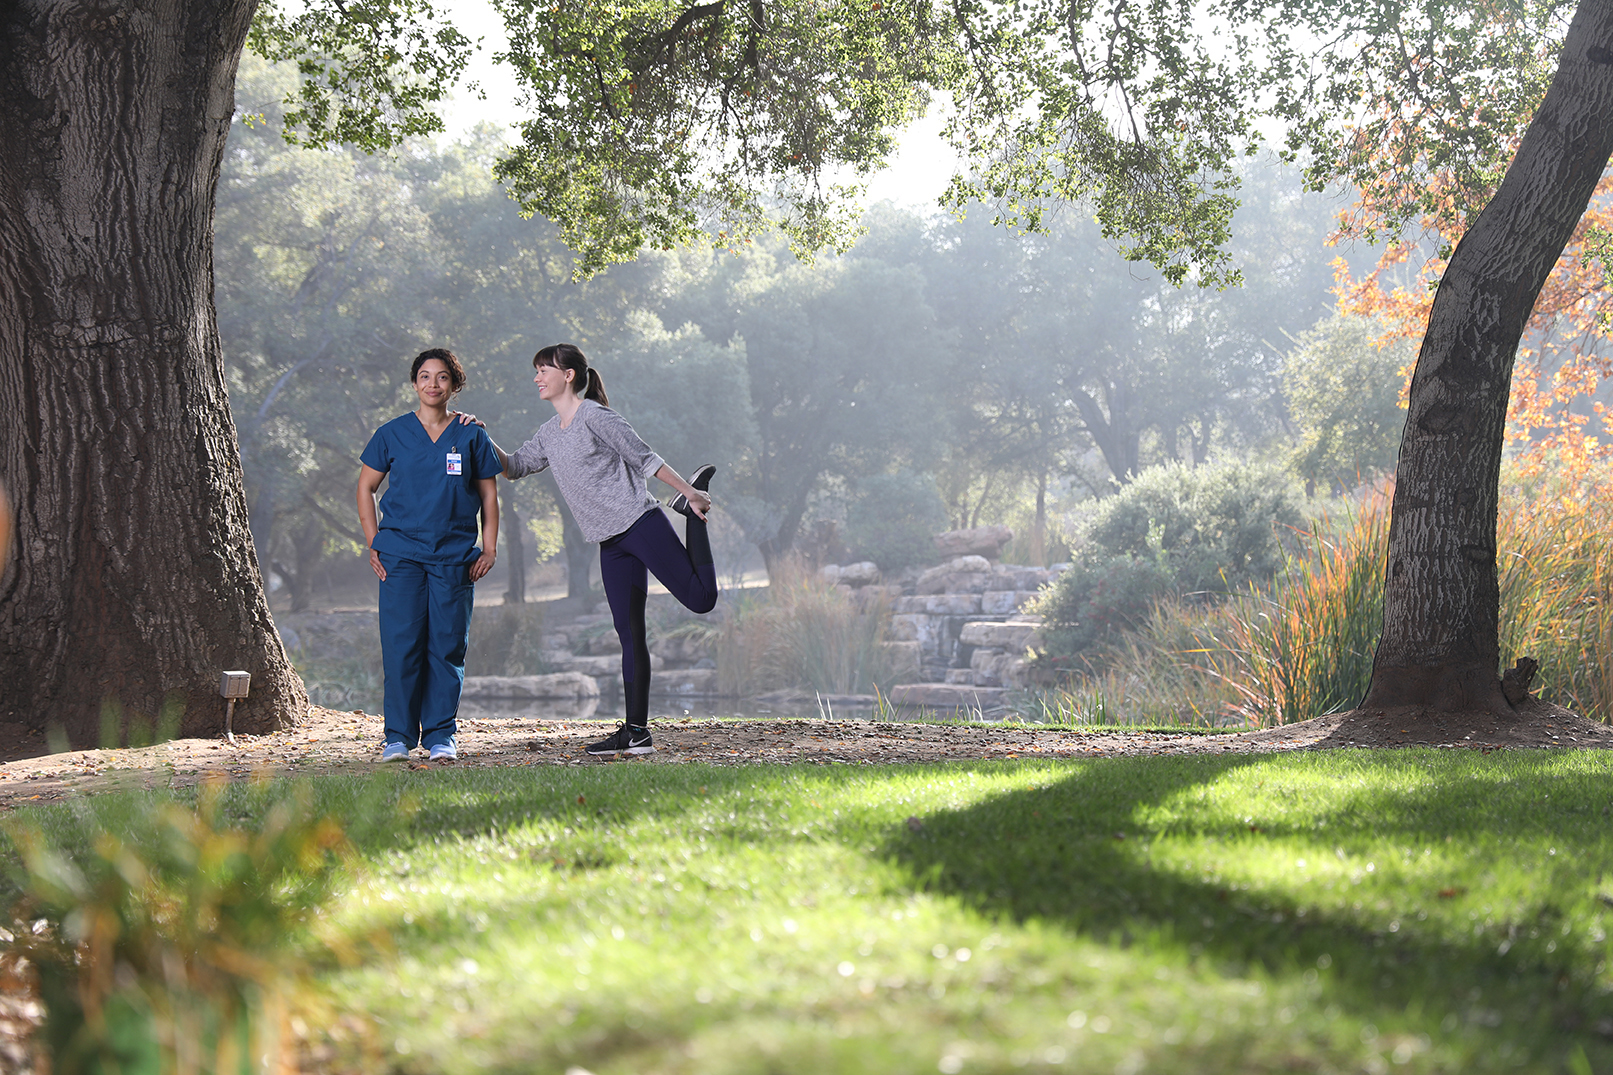 female jogger stretching in sunny park and leaning on nurse wearing scrubs